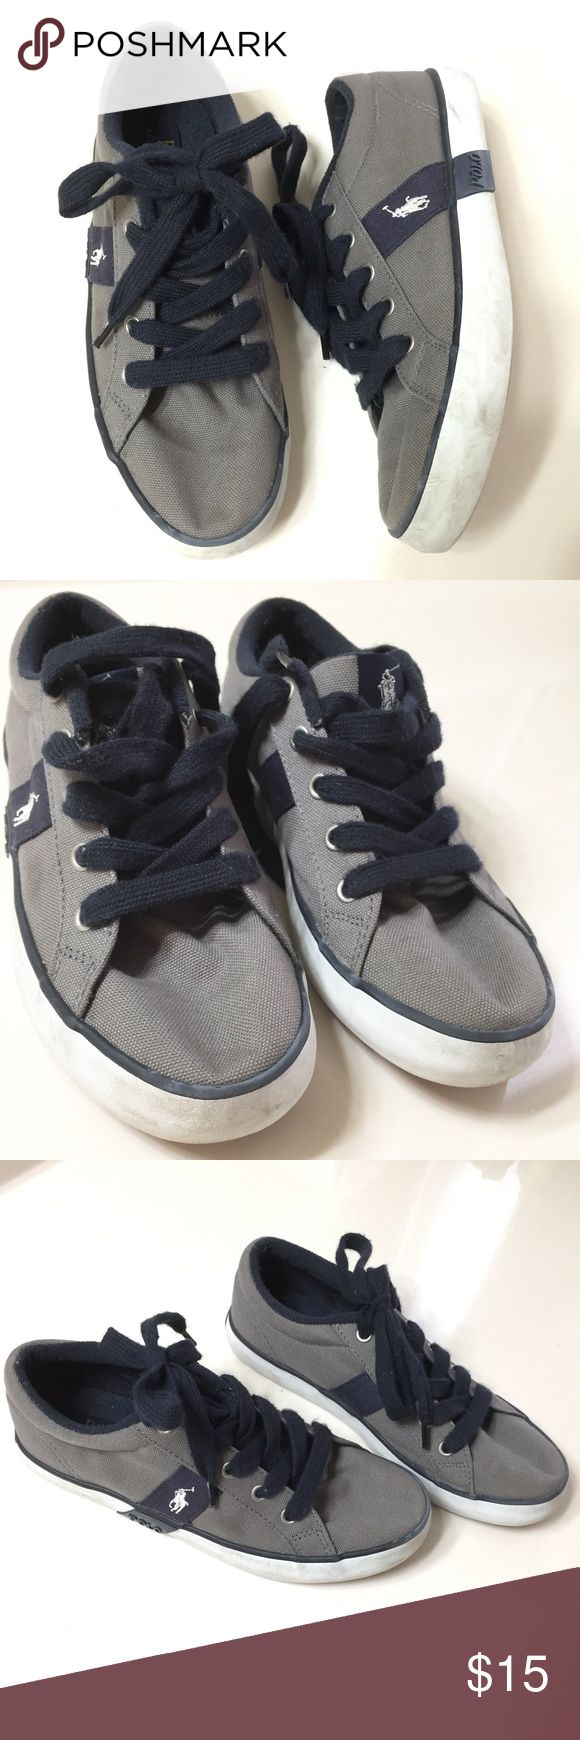 🎀Sale! 20% Off Bundles🎀Polo by Ralph LaurenShoes Preloved condition. Gray with navy blue trim and laces. Shows scuffing on the white part around the shoes. No other damages. Polo by Ralph Lauren Shoes Sneakers